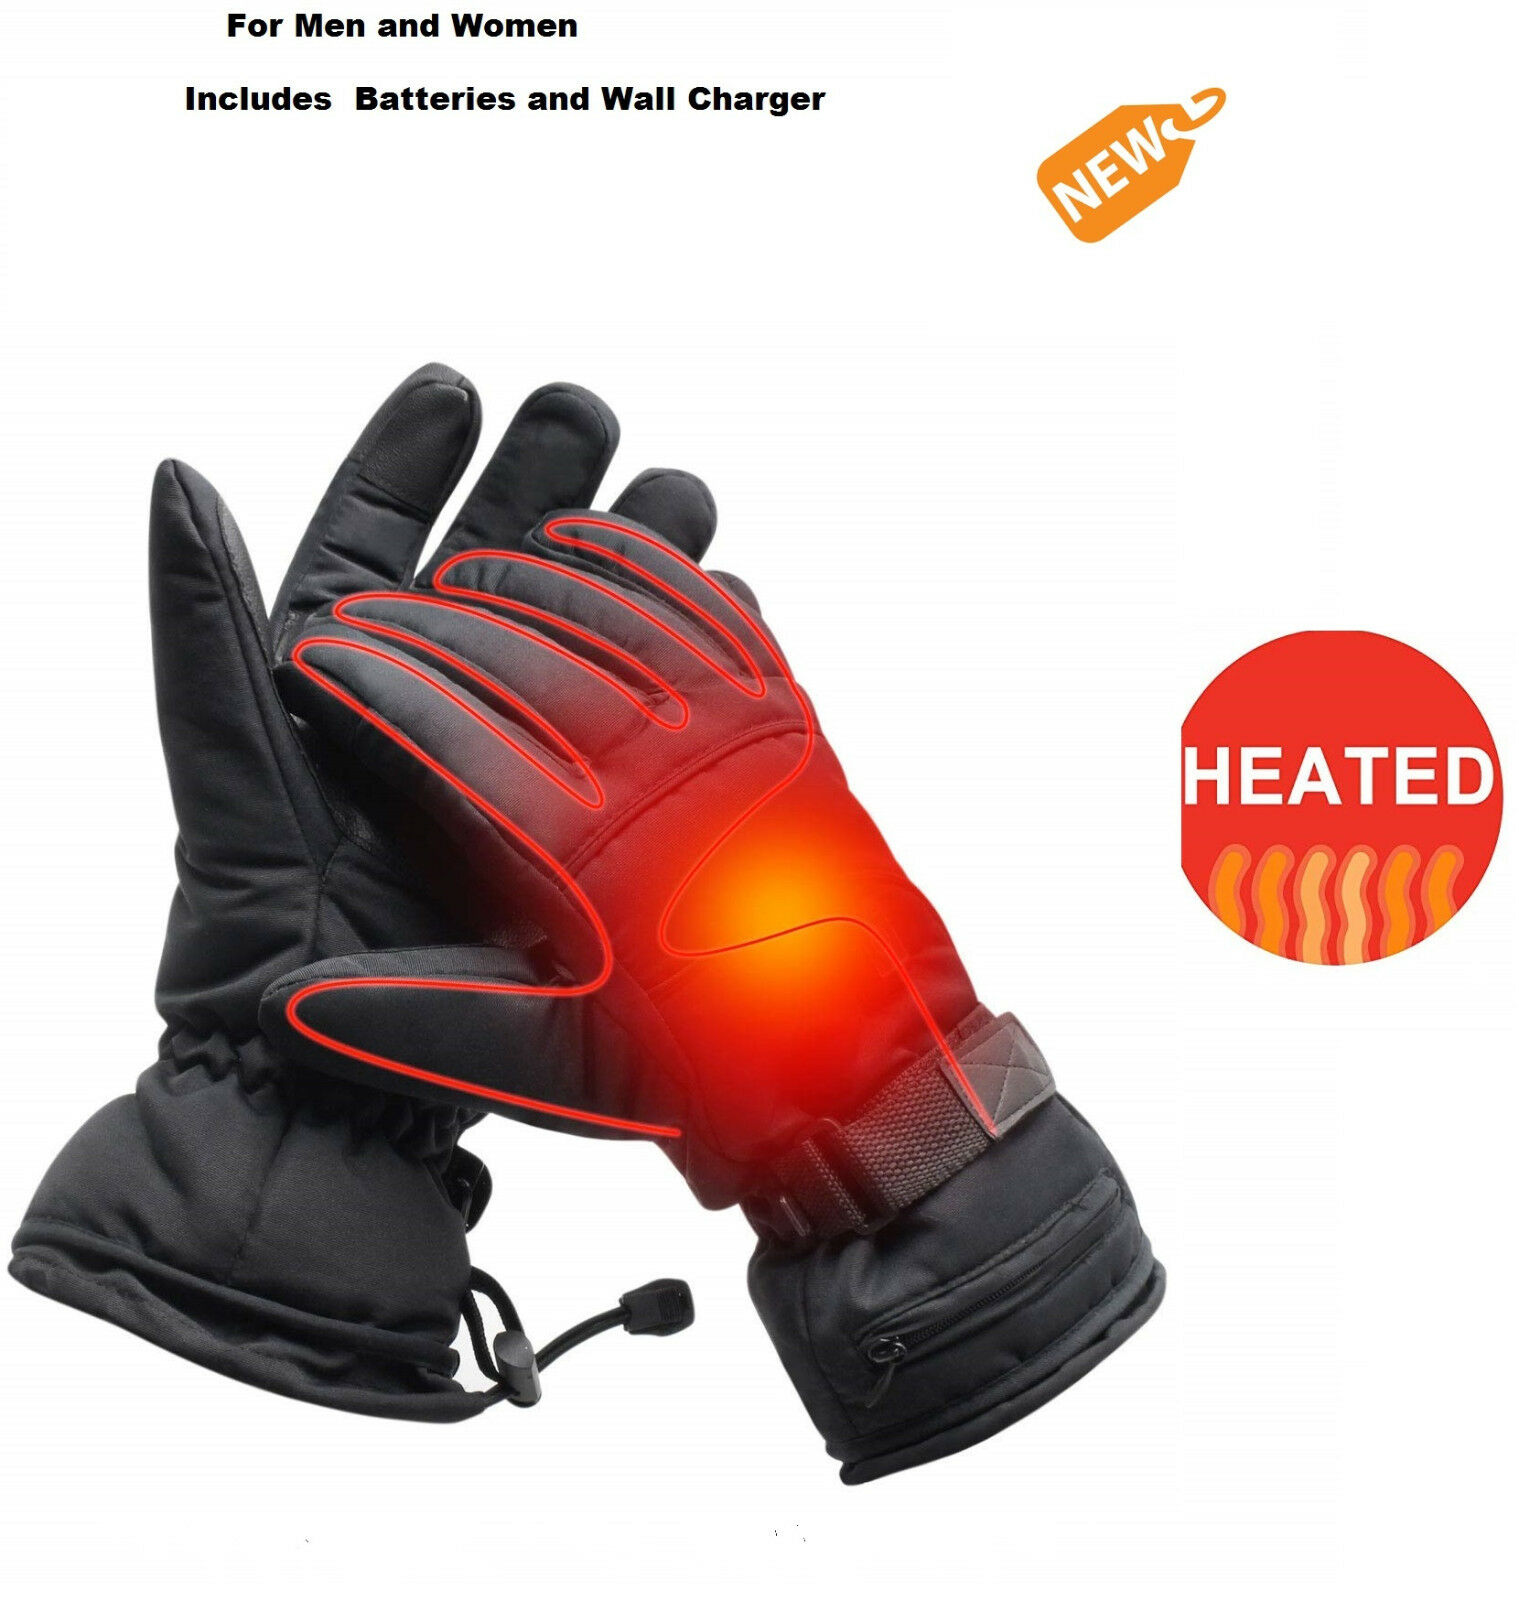 Electric Heated G s Men  Women Winter Hand Warmer  with 3.7V BATTERY & CHARGER  team promotions